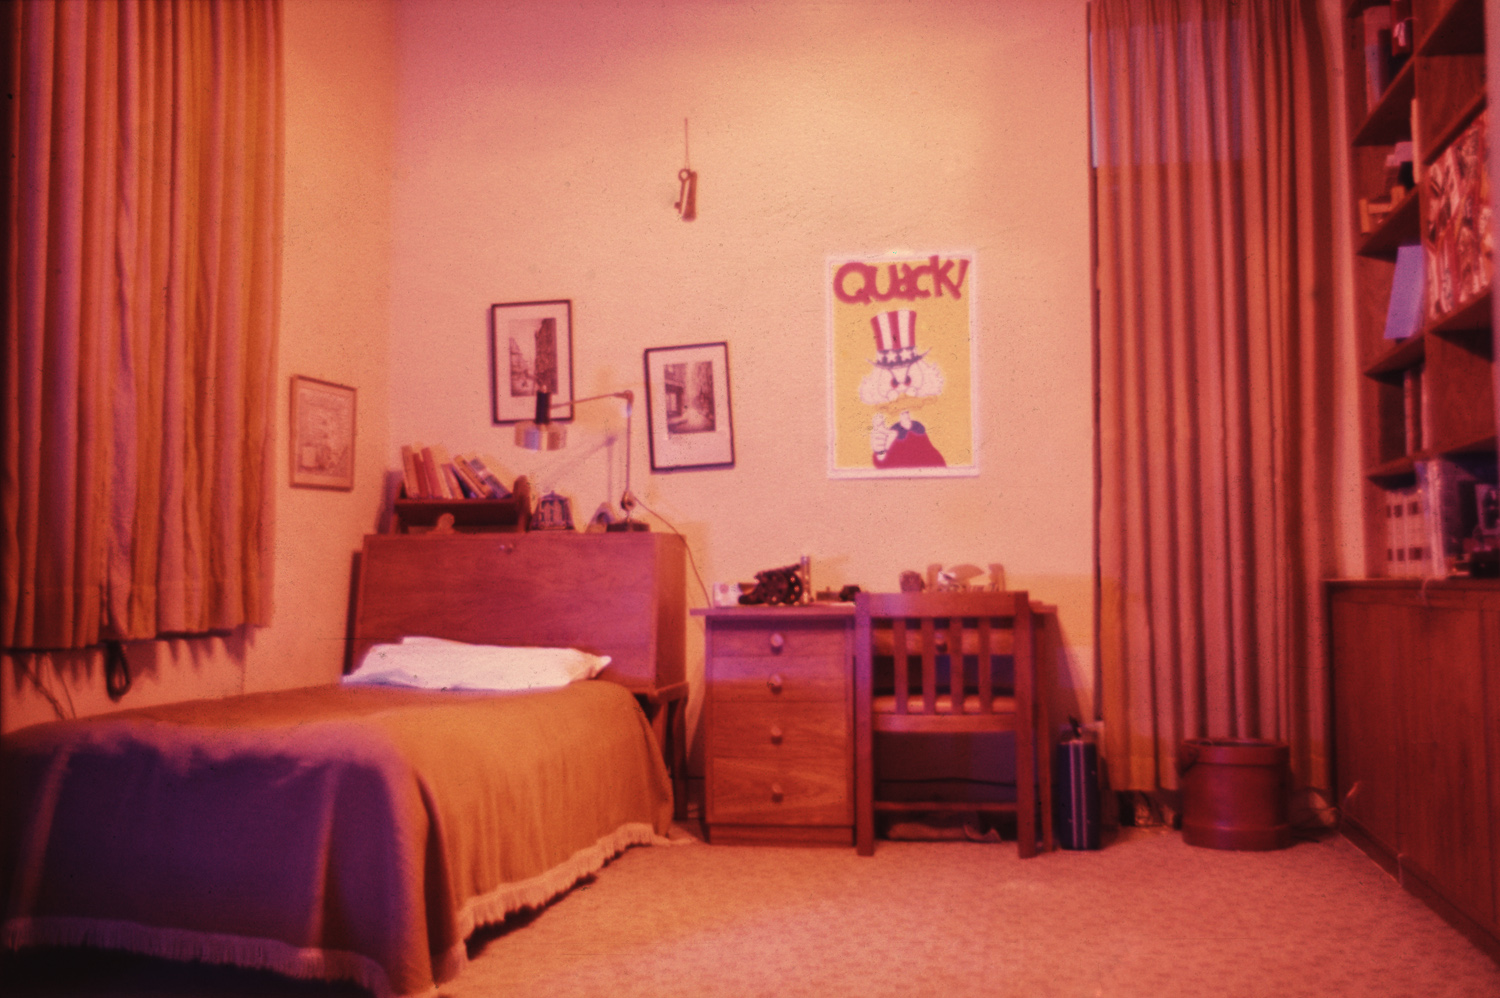 My room - Linksfield, 1971